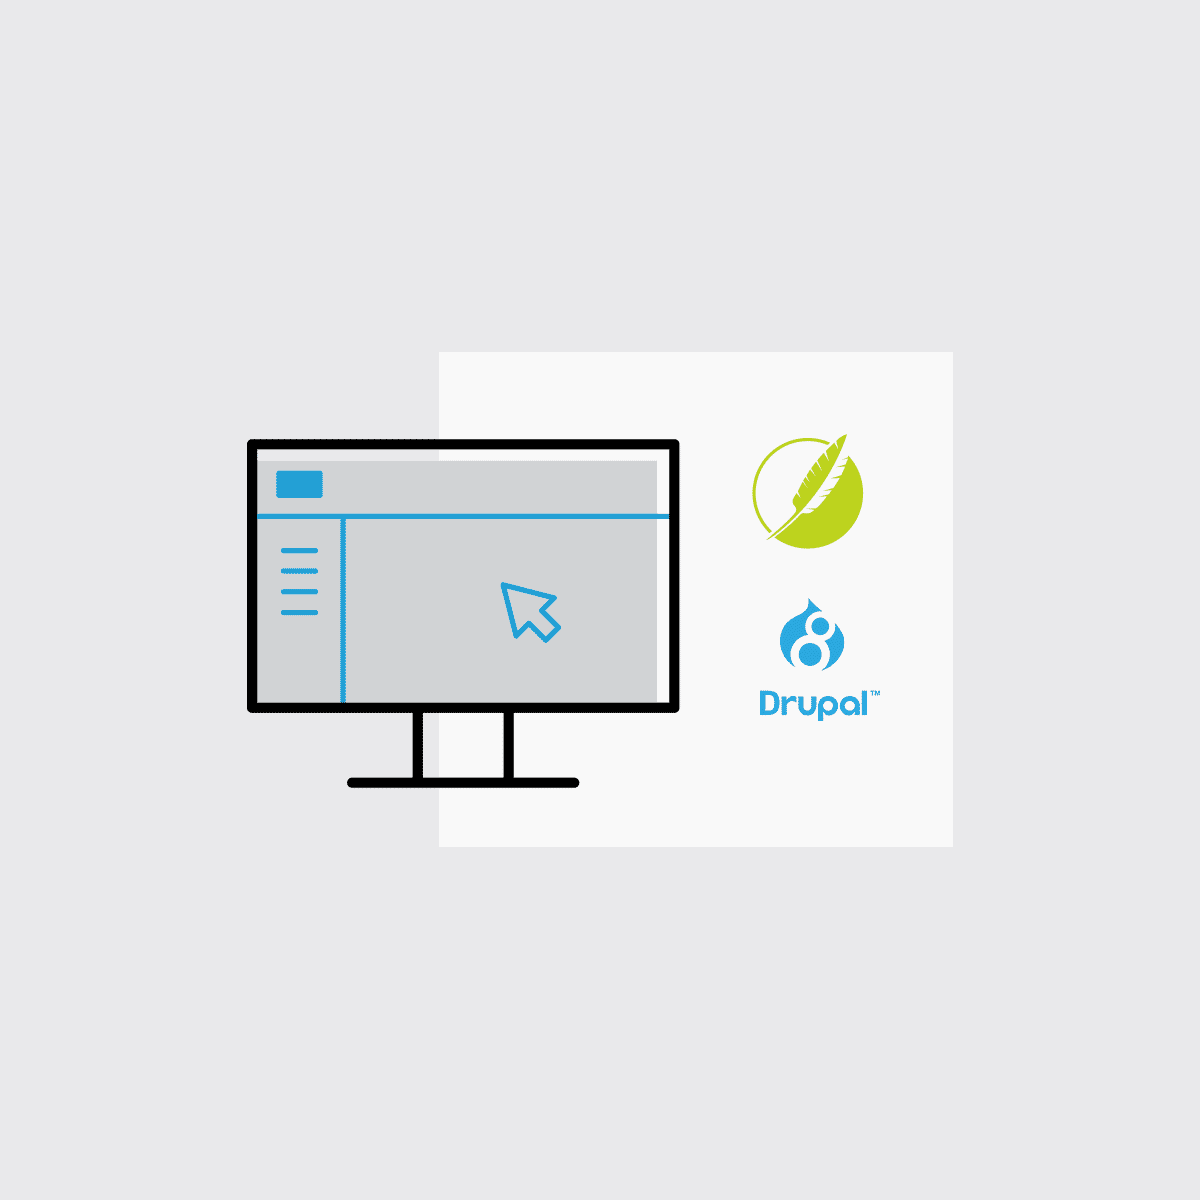 How TIBCO Jaspersoft Integrates MadCap Flare and Drupal to Deliver Content to Users